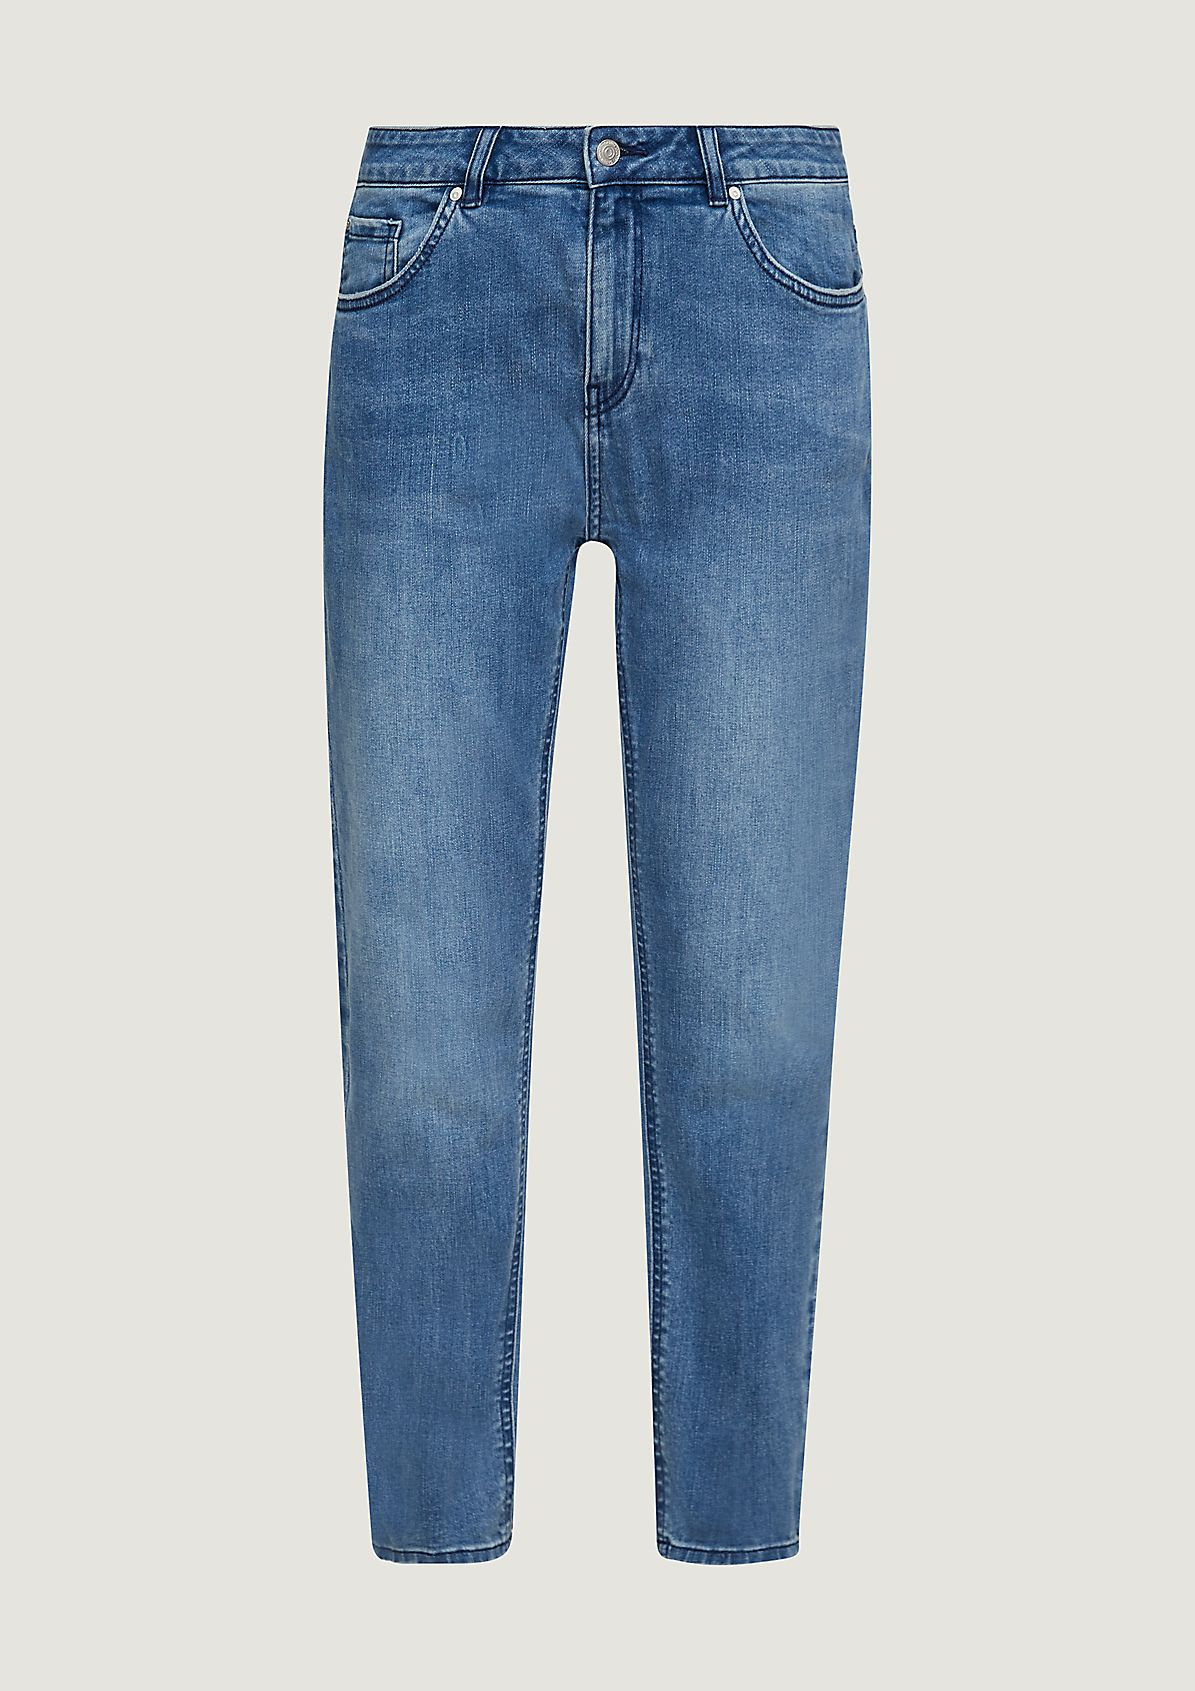 Regular Fit: Slim leg-Denim mit Wascheffekt